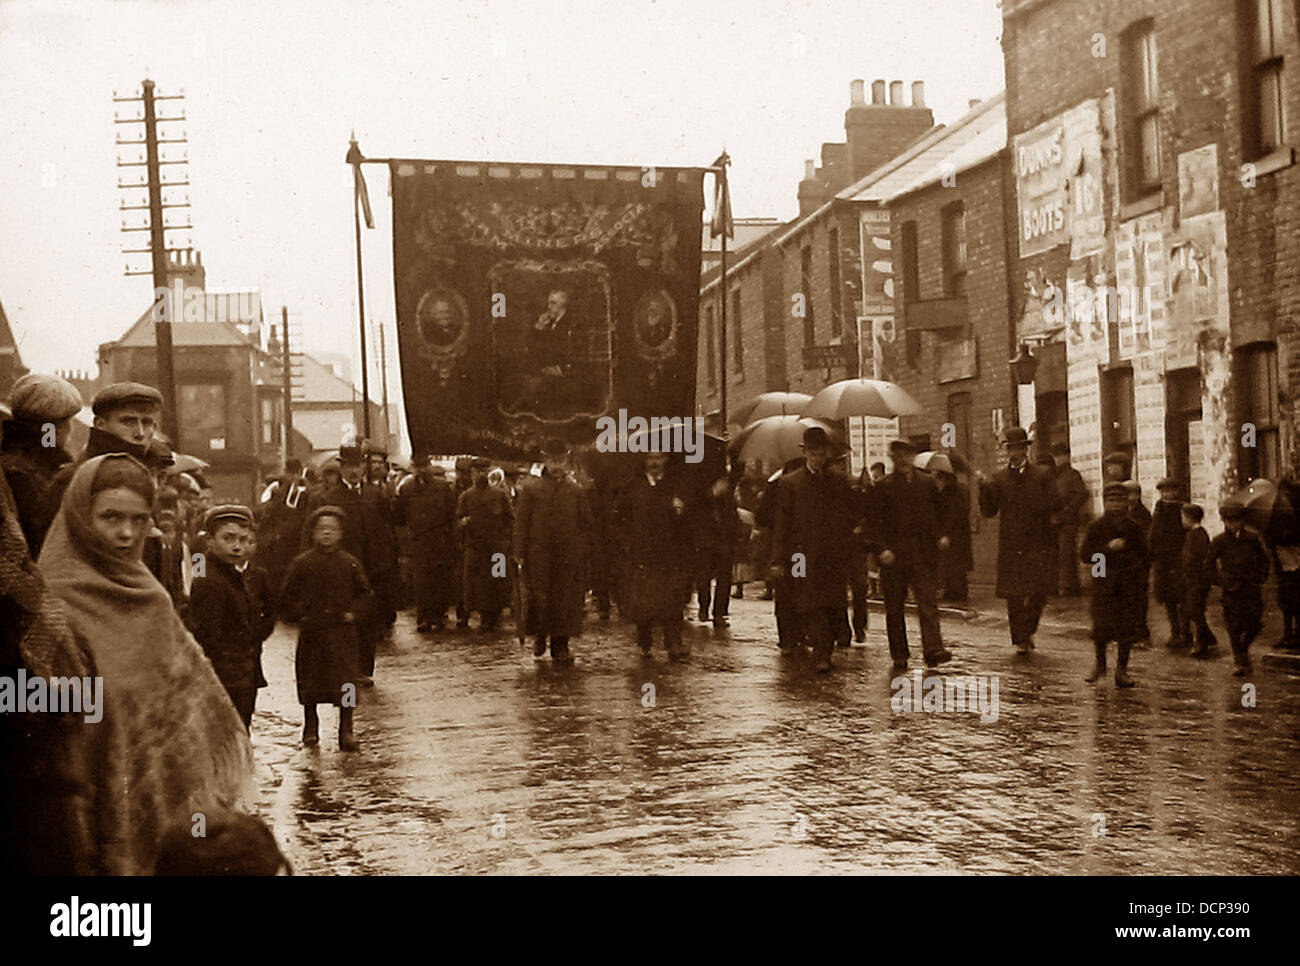 Miners' Gala Parade early 1900s - Stock Image